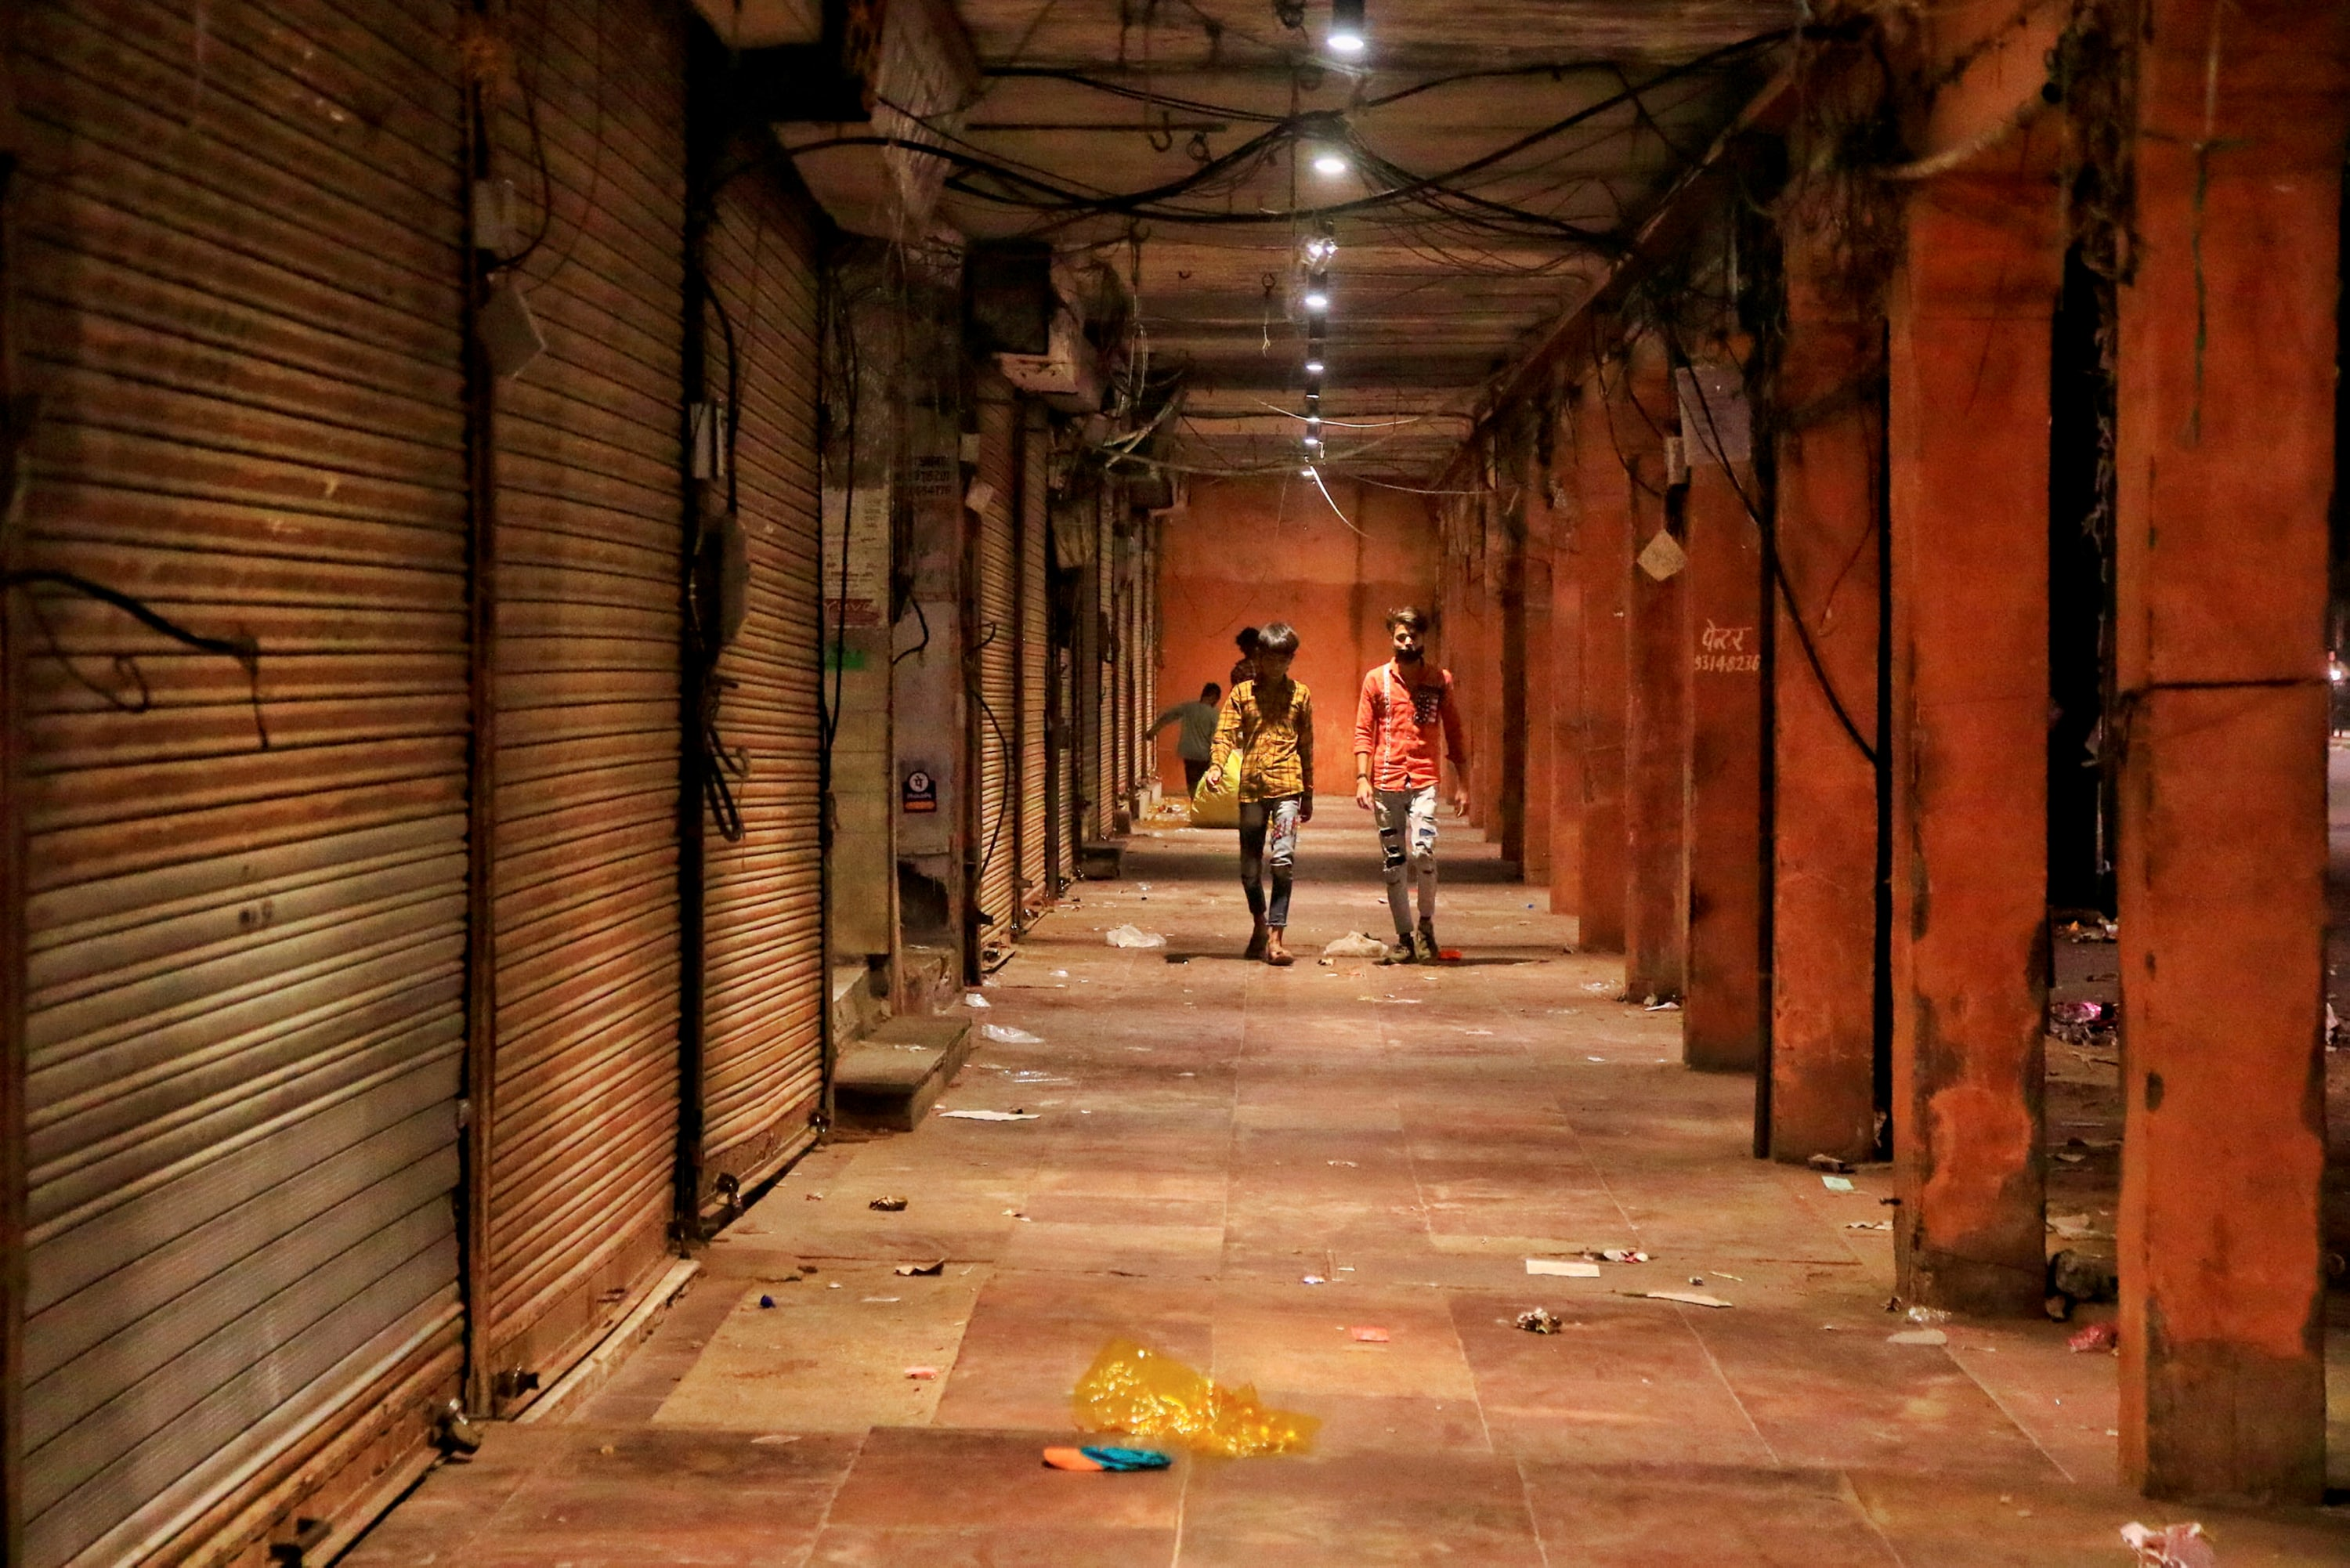 Night curfew from 9pm to 5am imposed in Haryana.(PTI | Representational image)